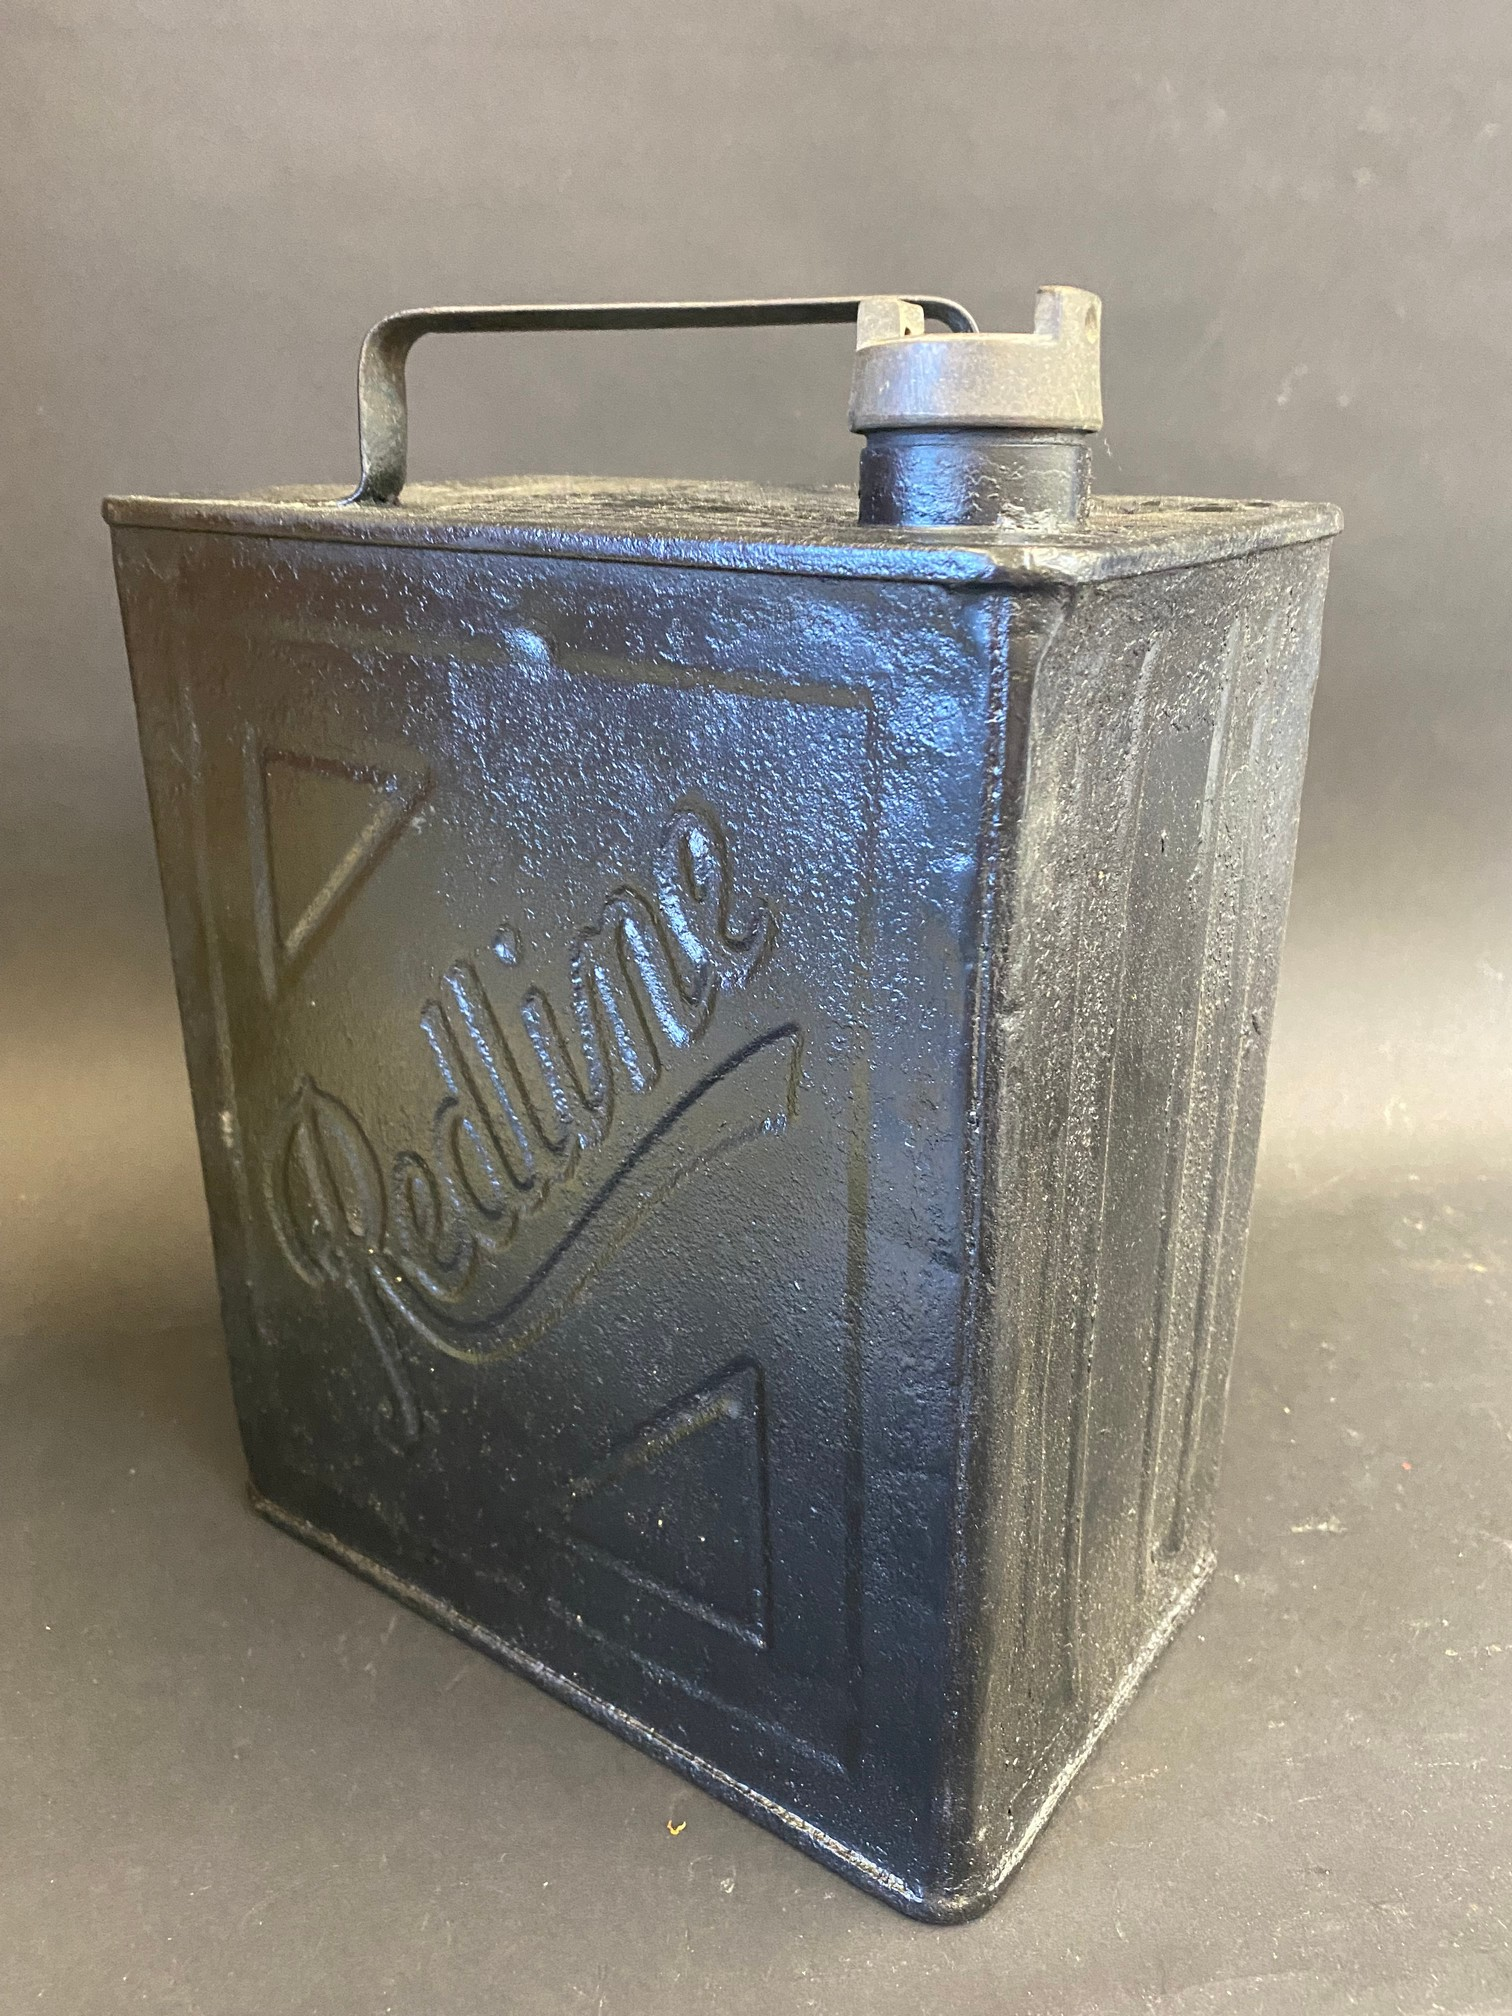 A Redline two gallon petrol can by Valor, indistinctly dated. - Image 2 of 4